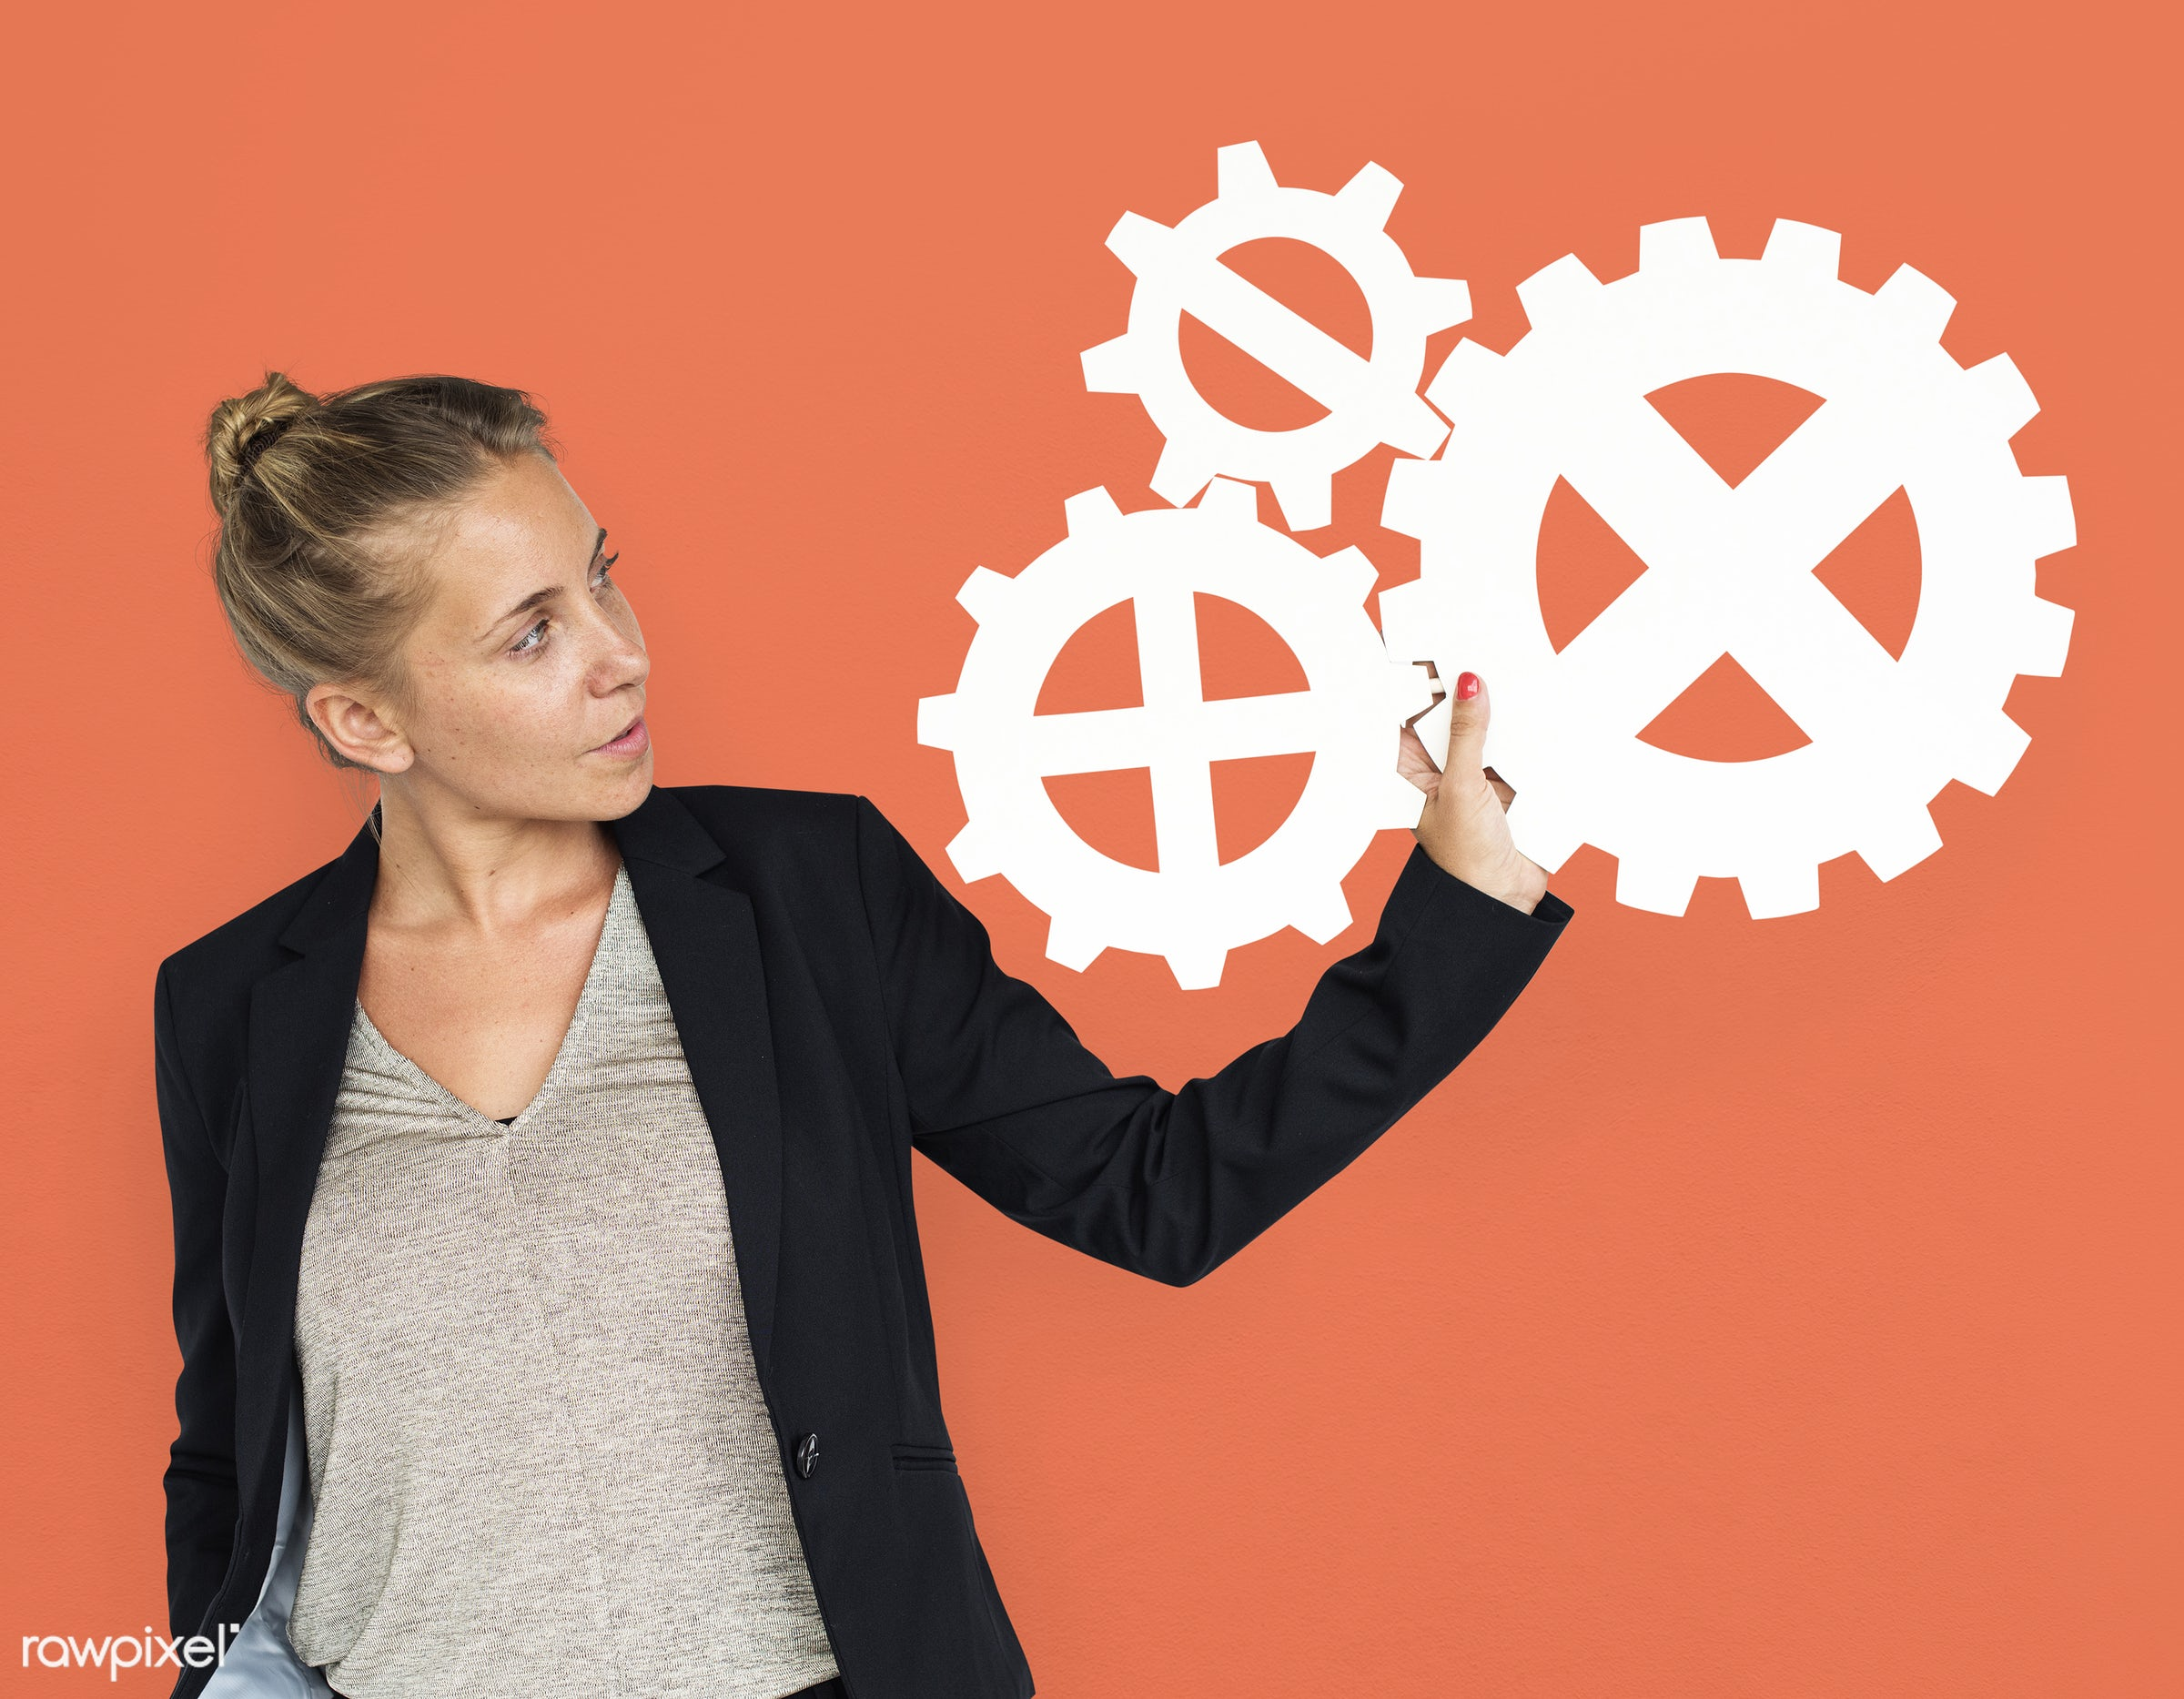 studio, expression, progress, person, holding, people, teamwork, gear, woman, orange, isolated, connection, symbol, engine,...